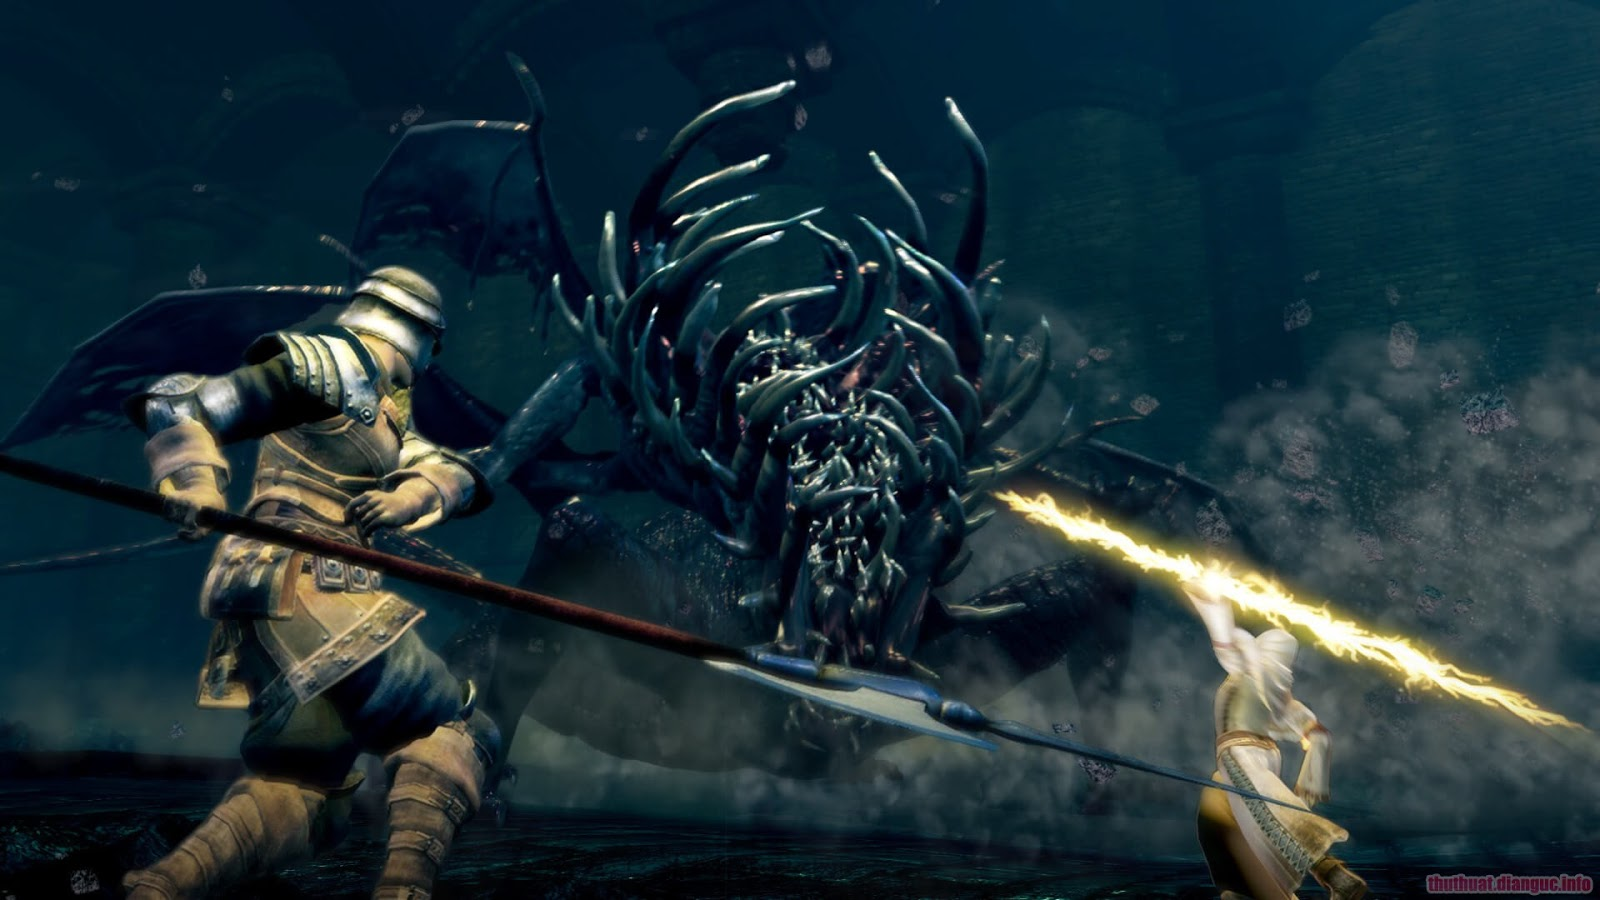 Download Game Dark Souls Remastered Full Crack, Game Dark Souls Remastered , Game Dark Souls Remastered free download, Dark Souls Remastered, Dark Souls Remastered free download